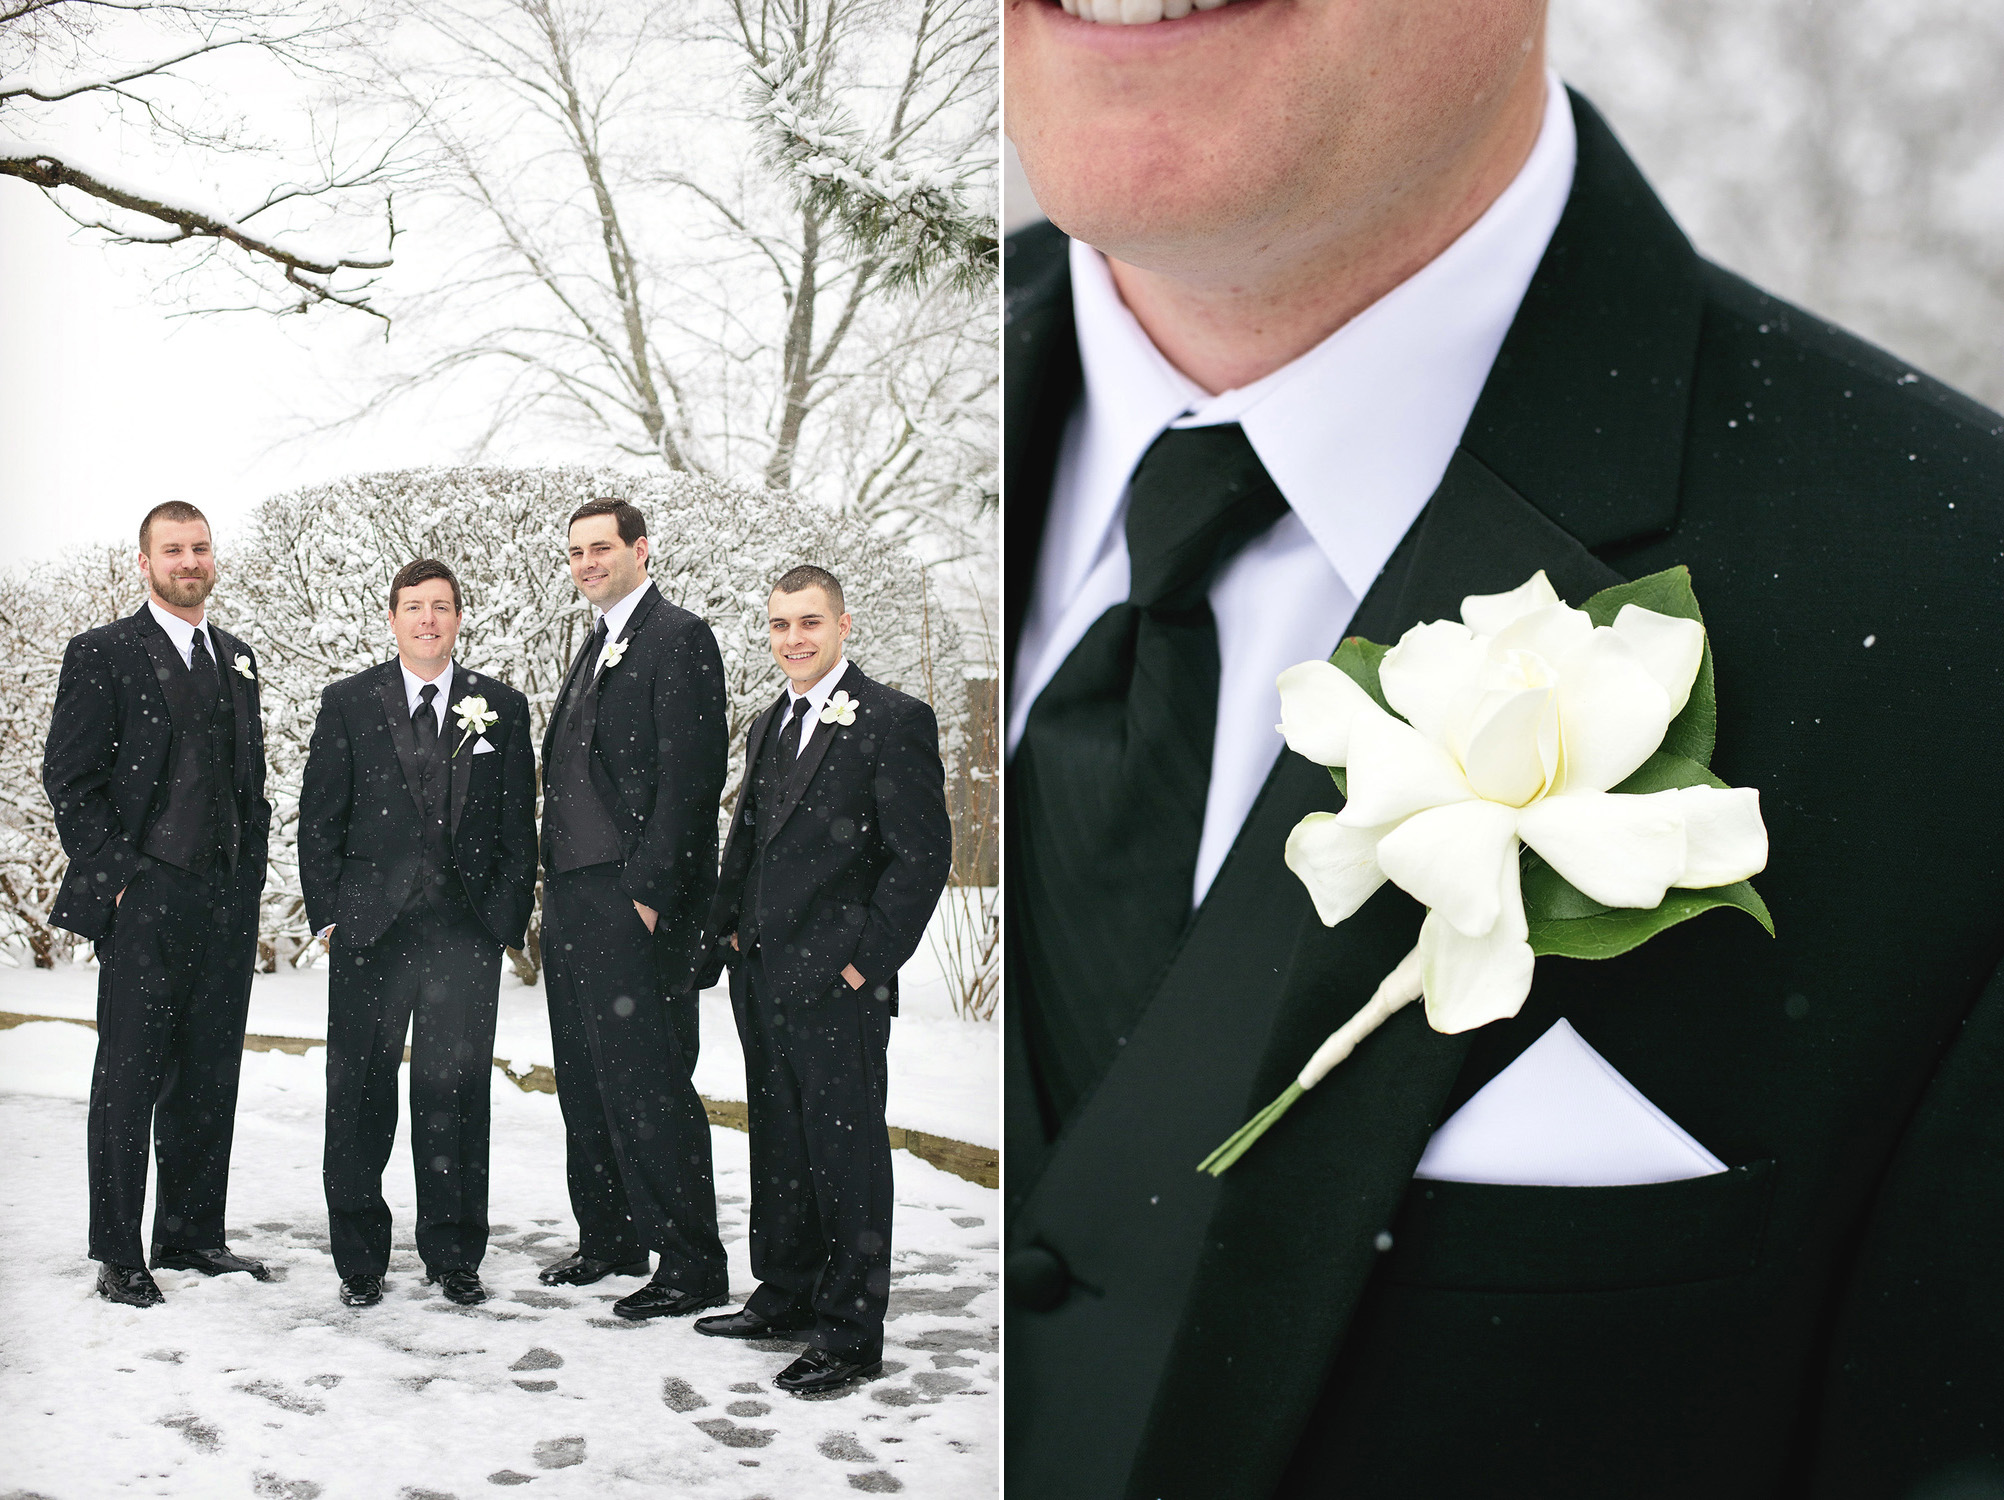 Radnor-Hunt-Club-Winter-Wedding-Philadelphia-Weddings-Magazine018.jpg